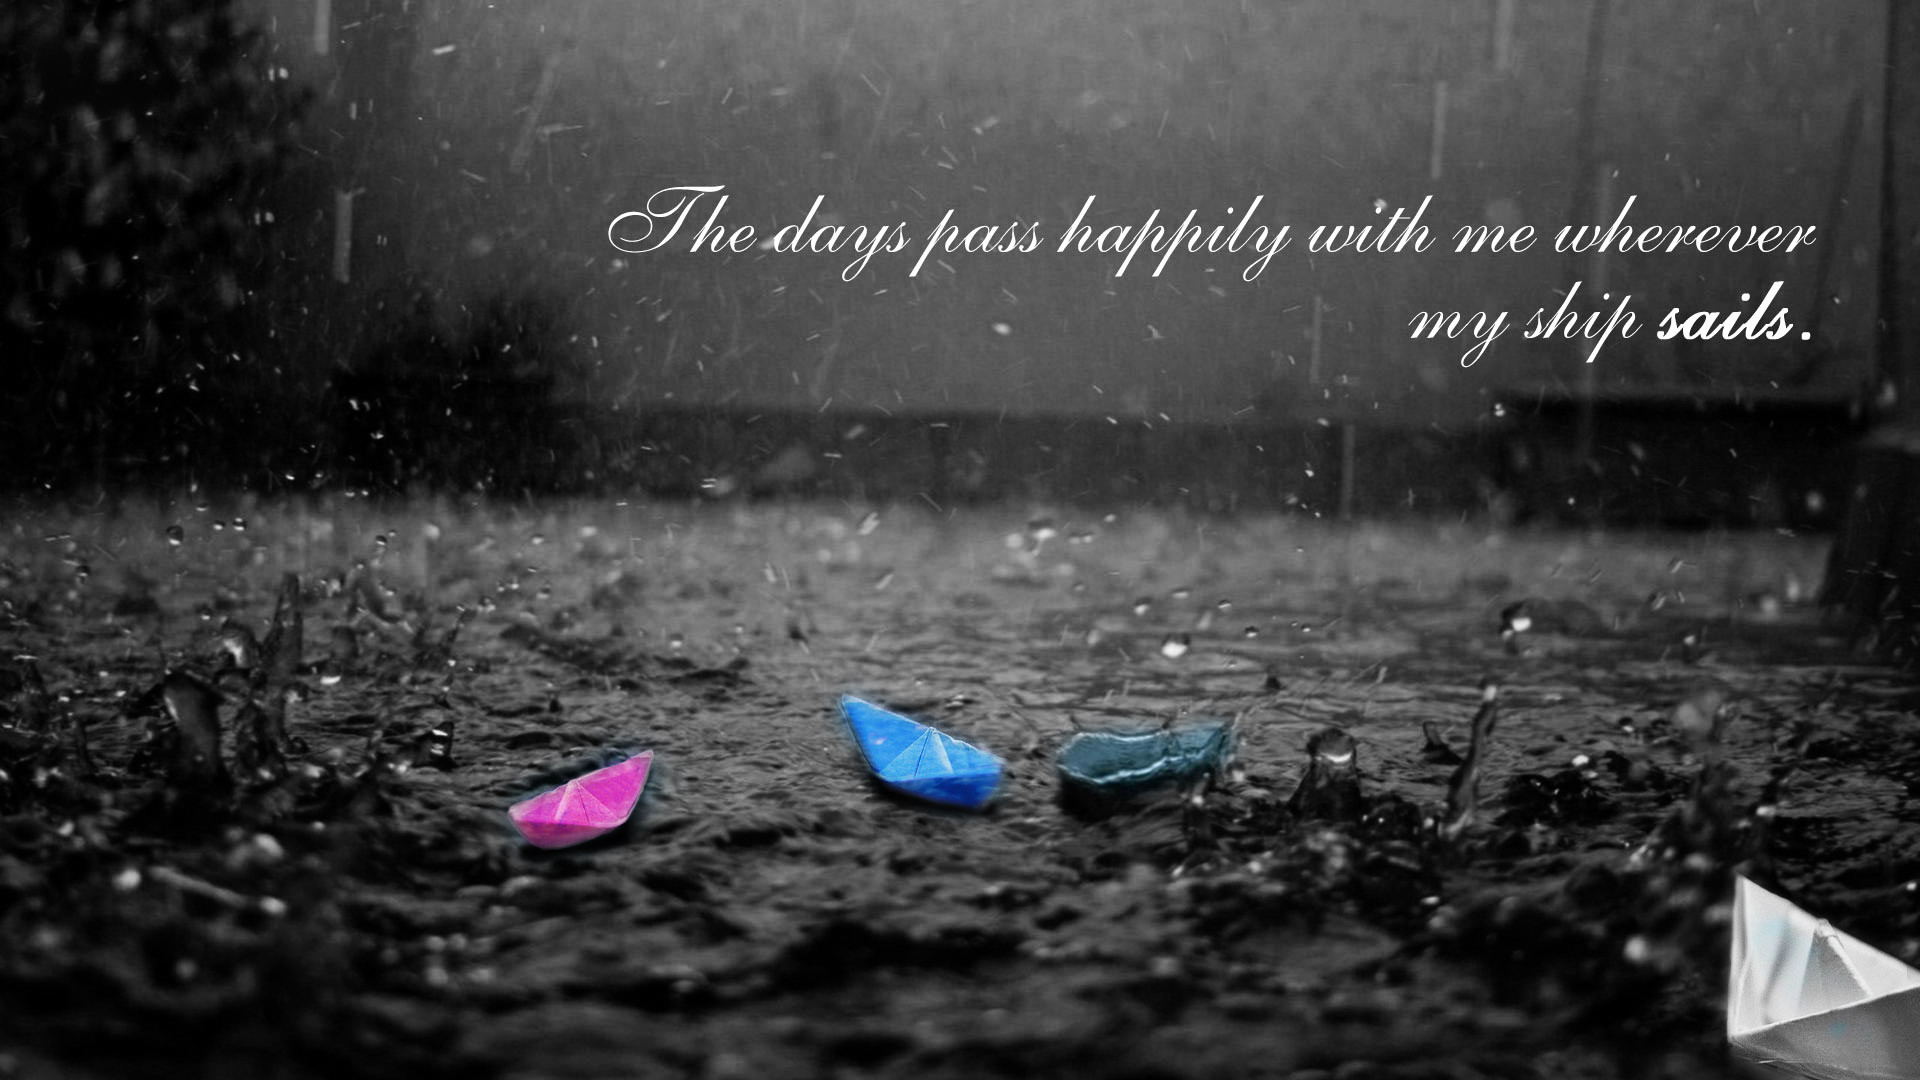 Tumblr Quotes Wallpaper HD Resolution